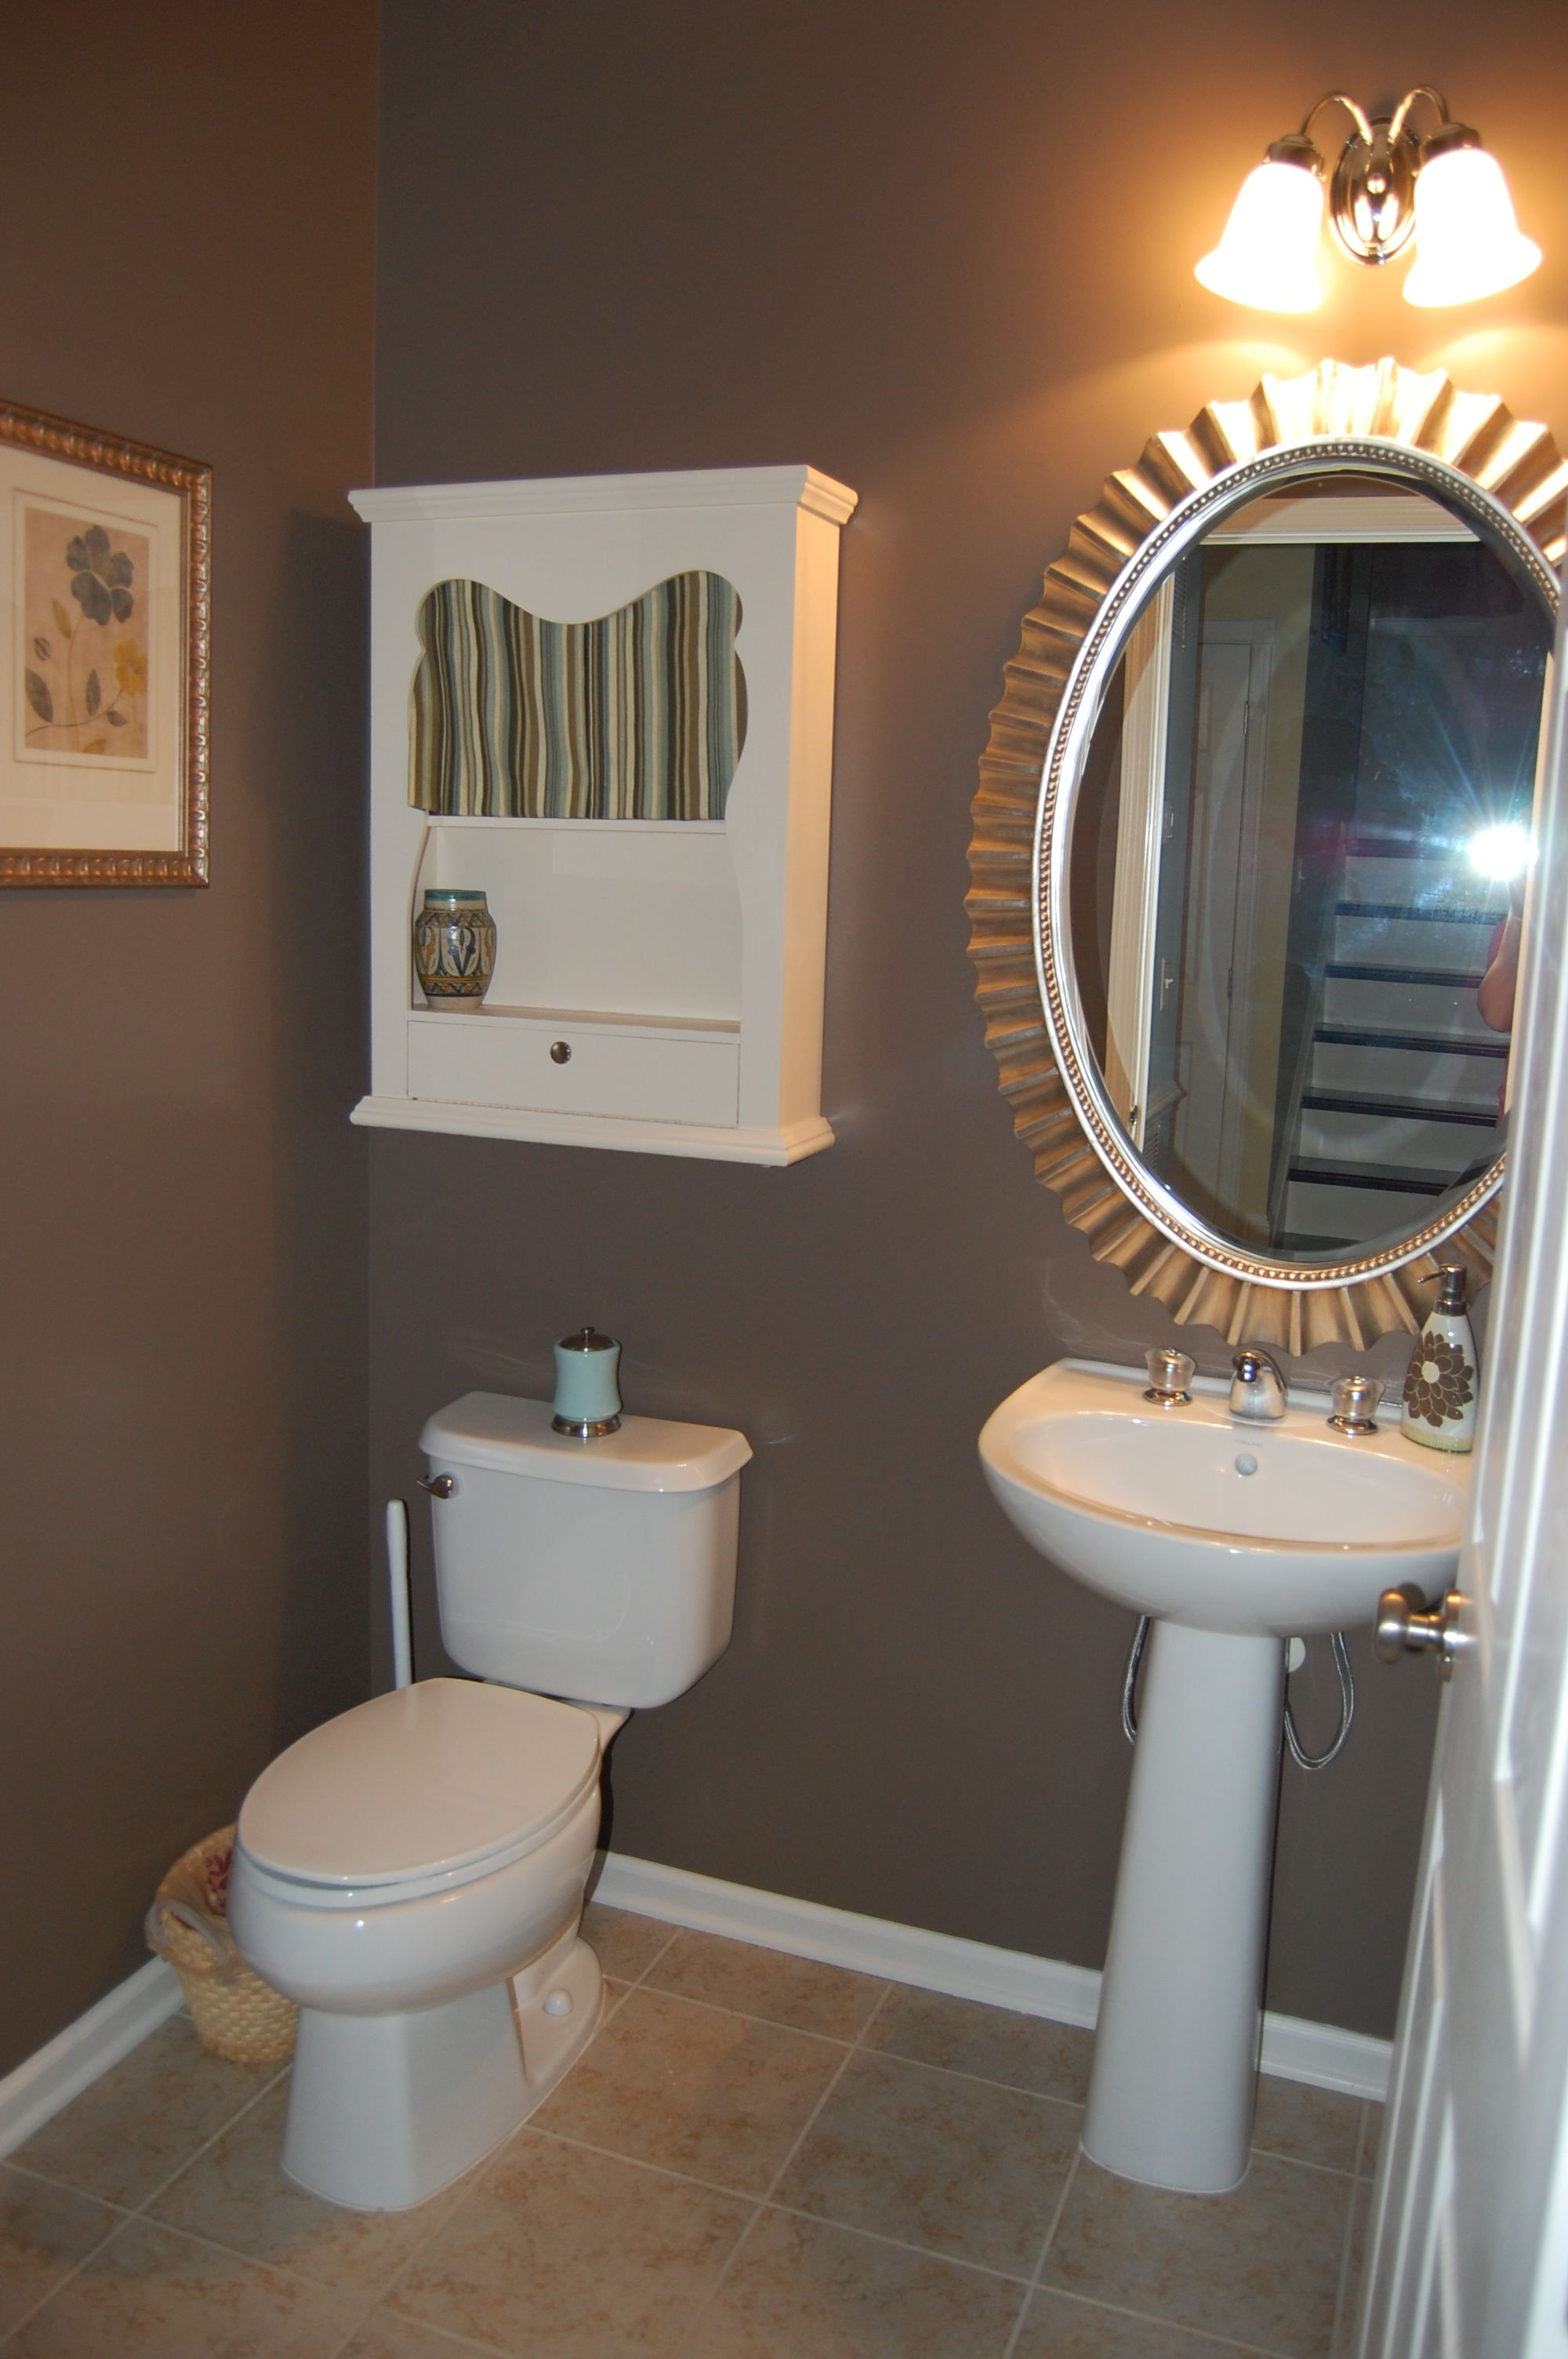 Powder room bathroom color projects pinterest like 2 color bathroom paint ideas